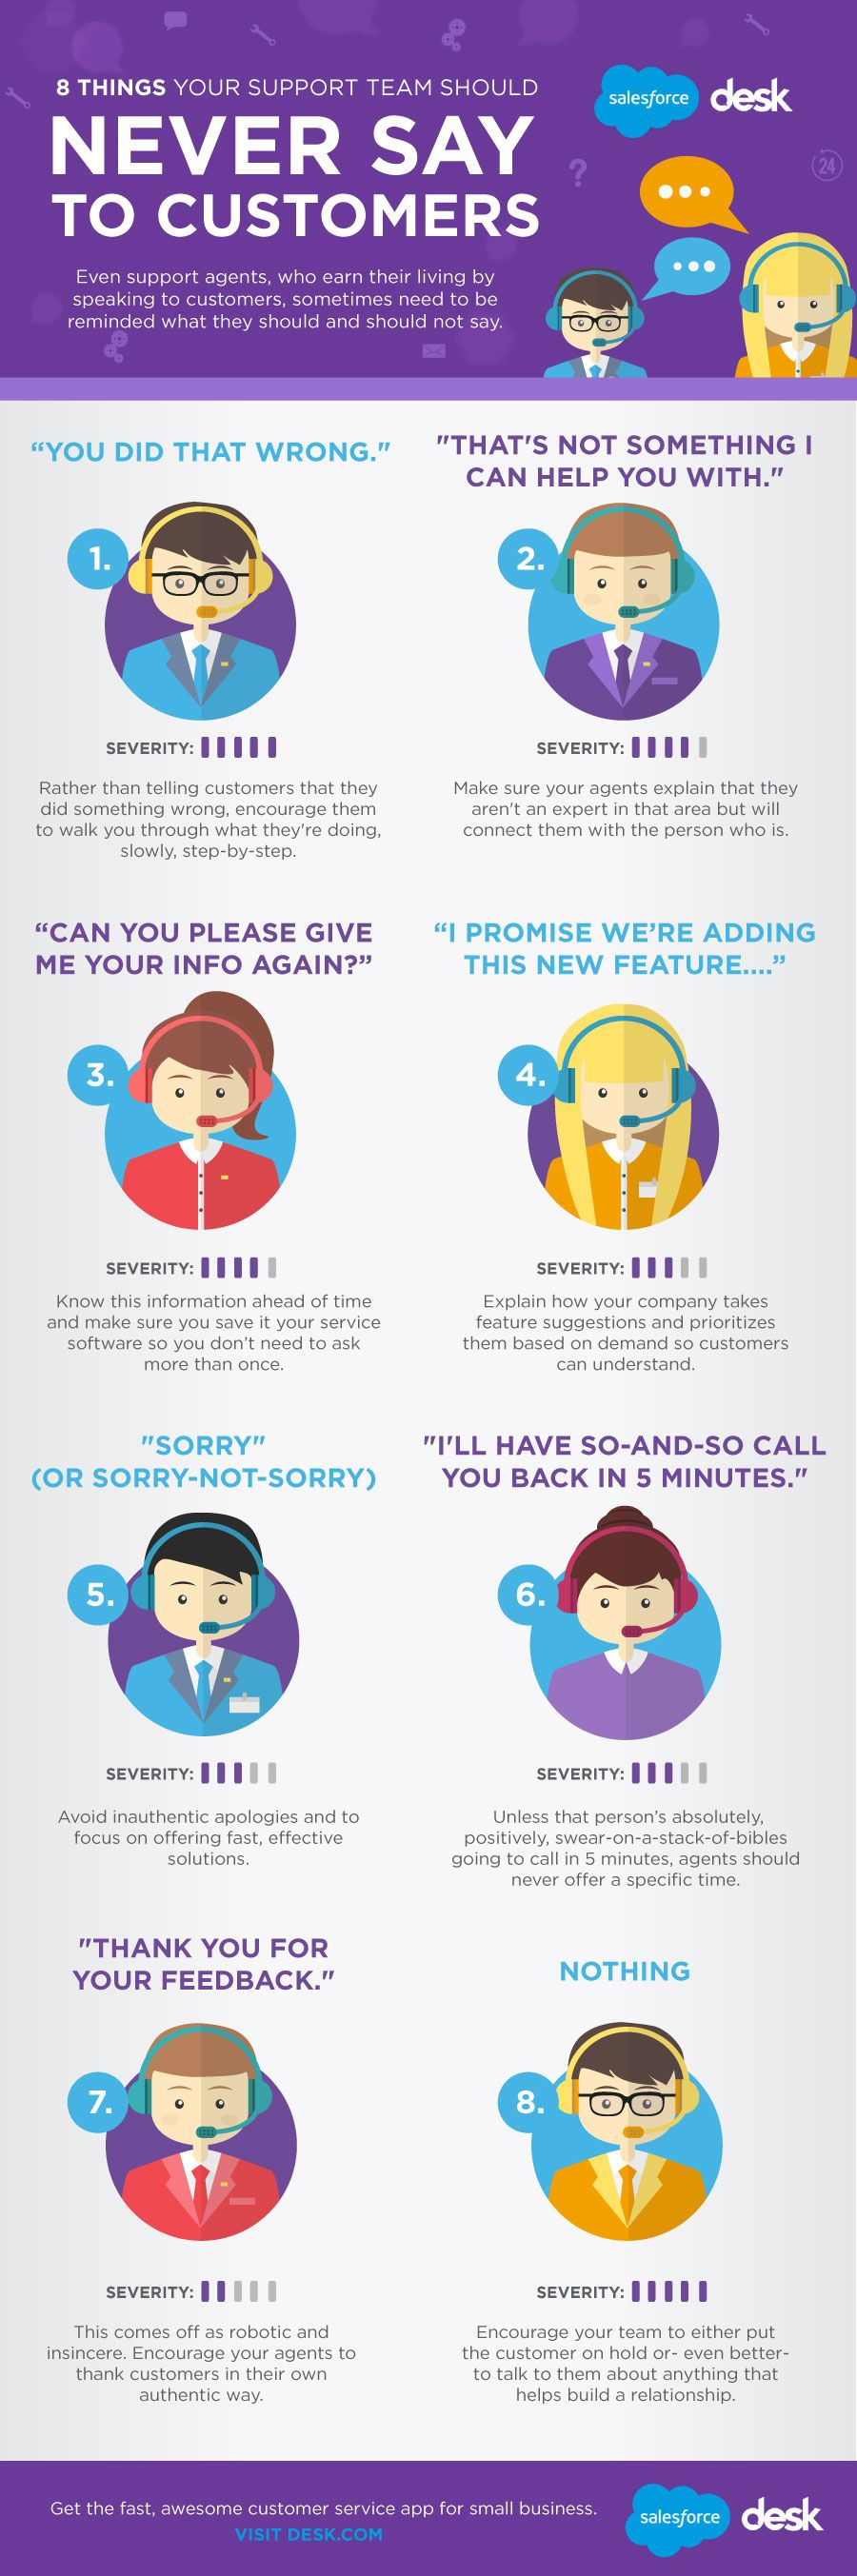 8 Things Your Customer Service Team Should Never Say To Customers #infographic